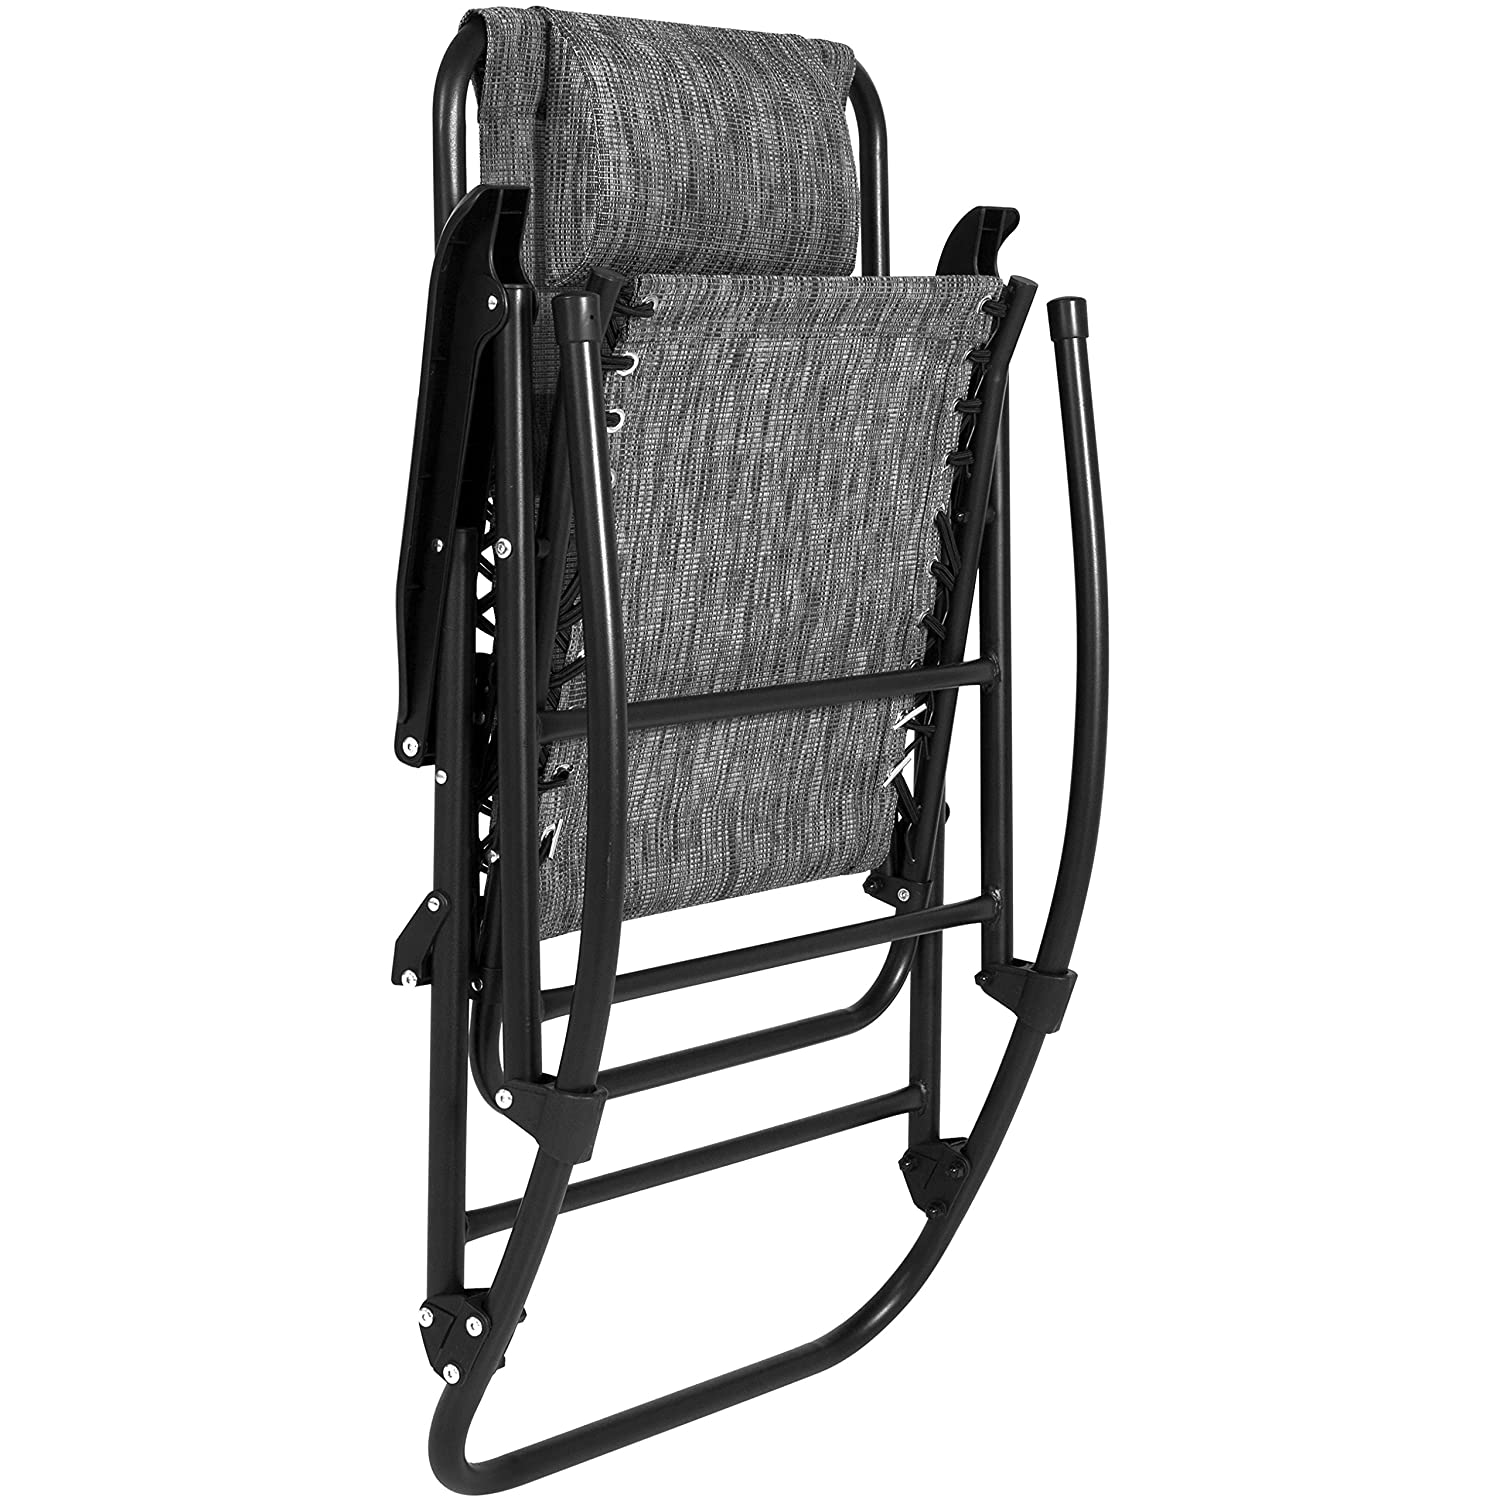 Gray Best Choice Products Foldable Zero Gravity Rocking Mesh Patio Recliner Chair with Headrest Pillow